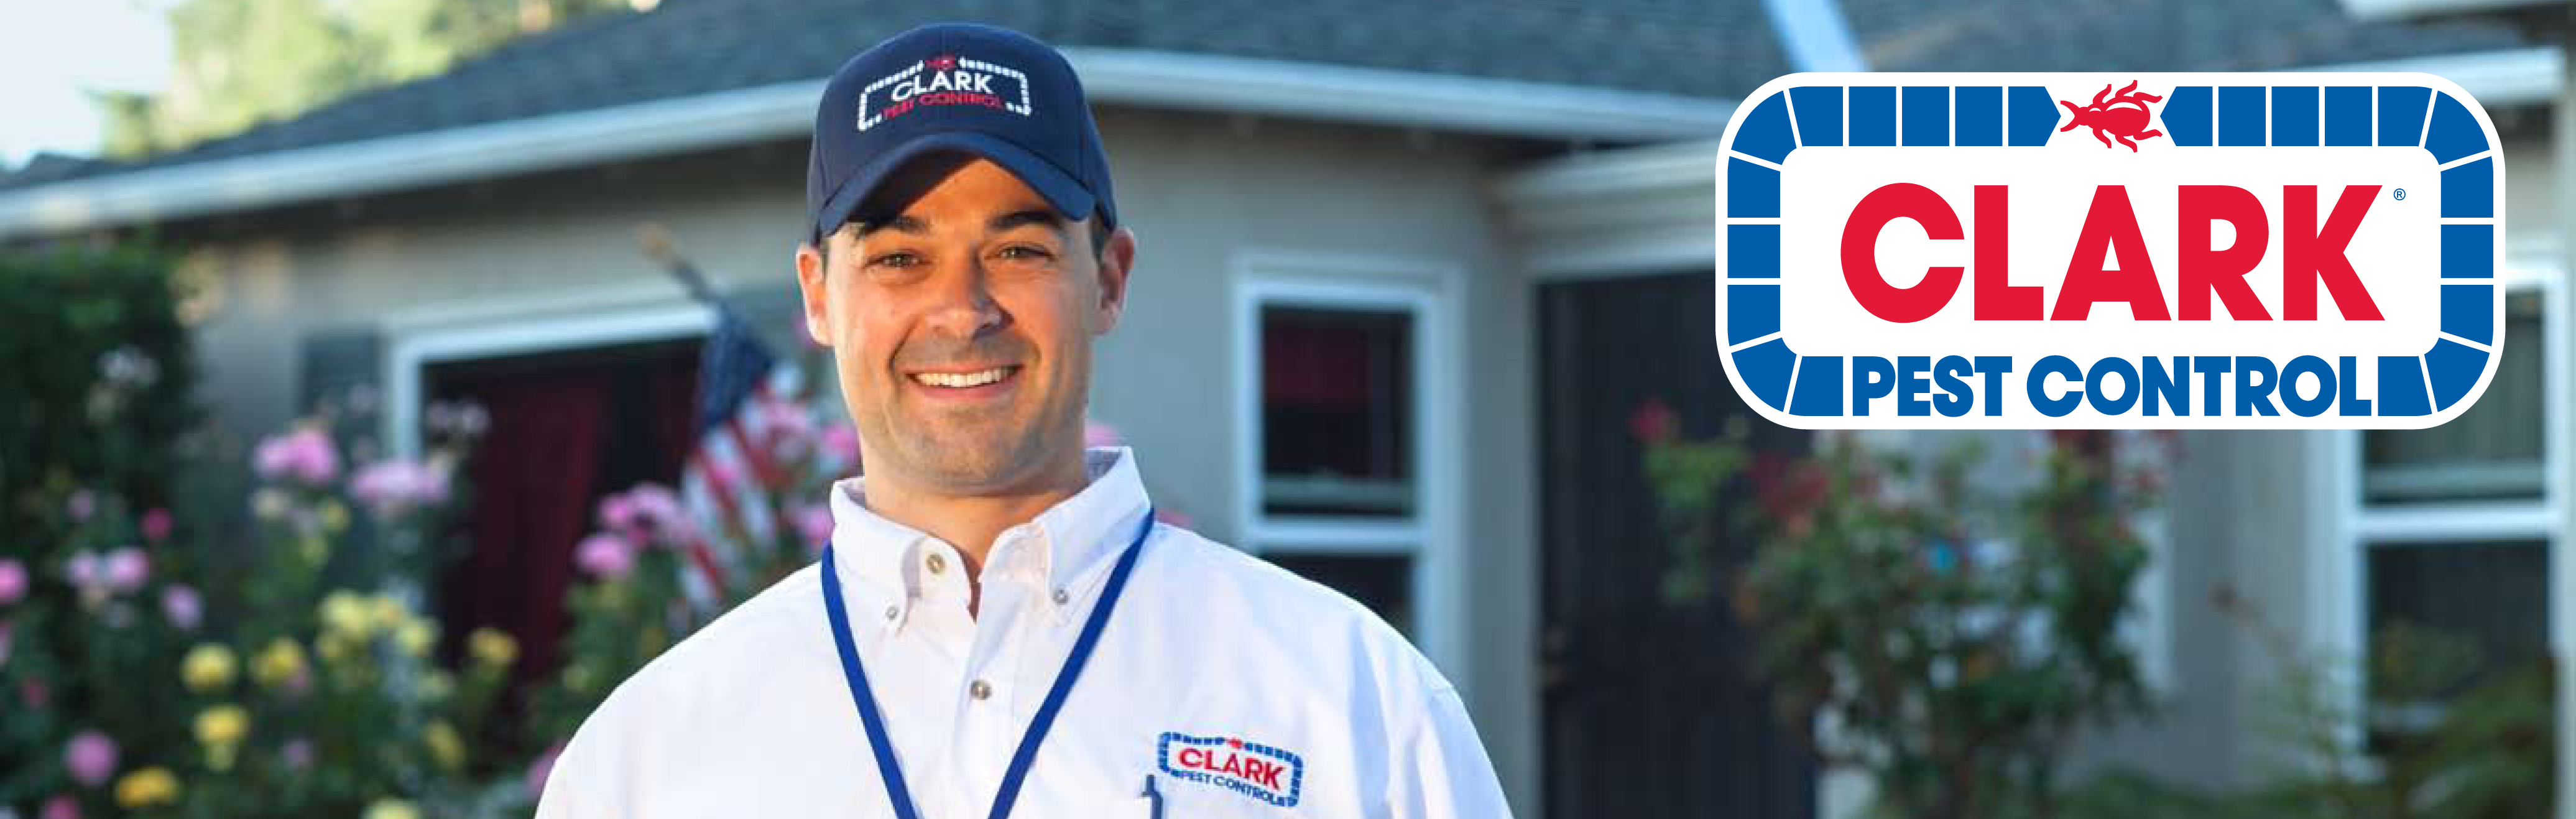 Clark Pest Control reviews | Home & Garden at 2313 Research Drive - Livermore CA